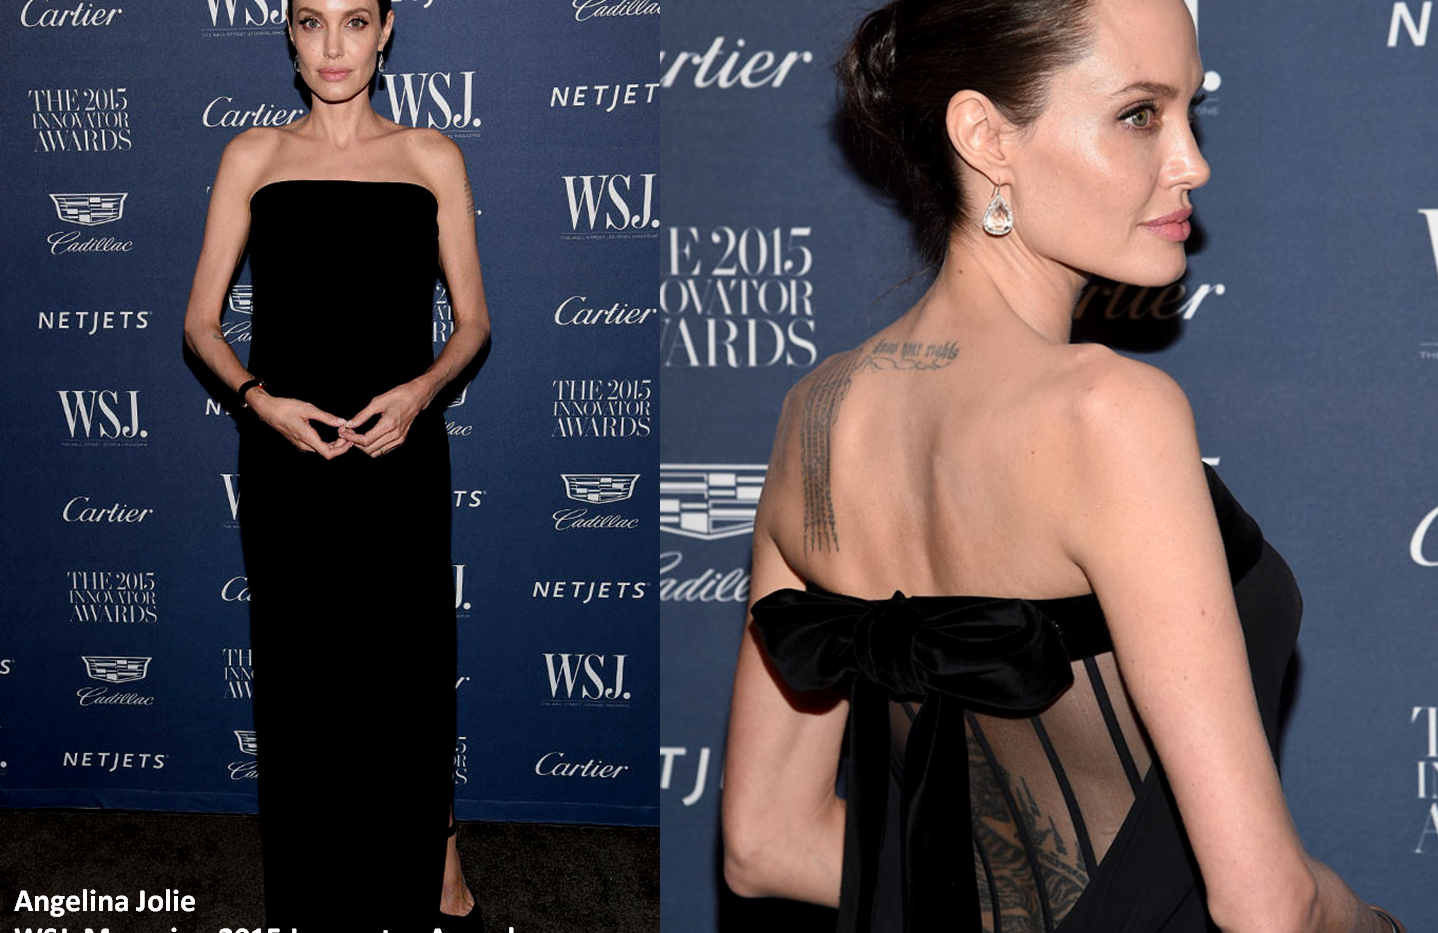 Angelina Jolie at the WSJ. Magazine 2015 Innovator Awards wearing black gown - Project for OM FORD - pattern making - dressmaking - fitting / tailoring - managing - garment technology consult